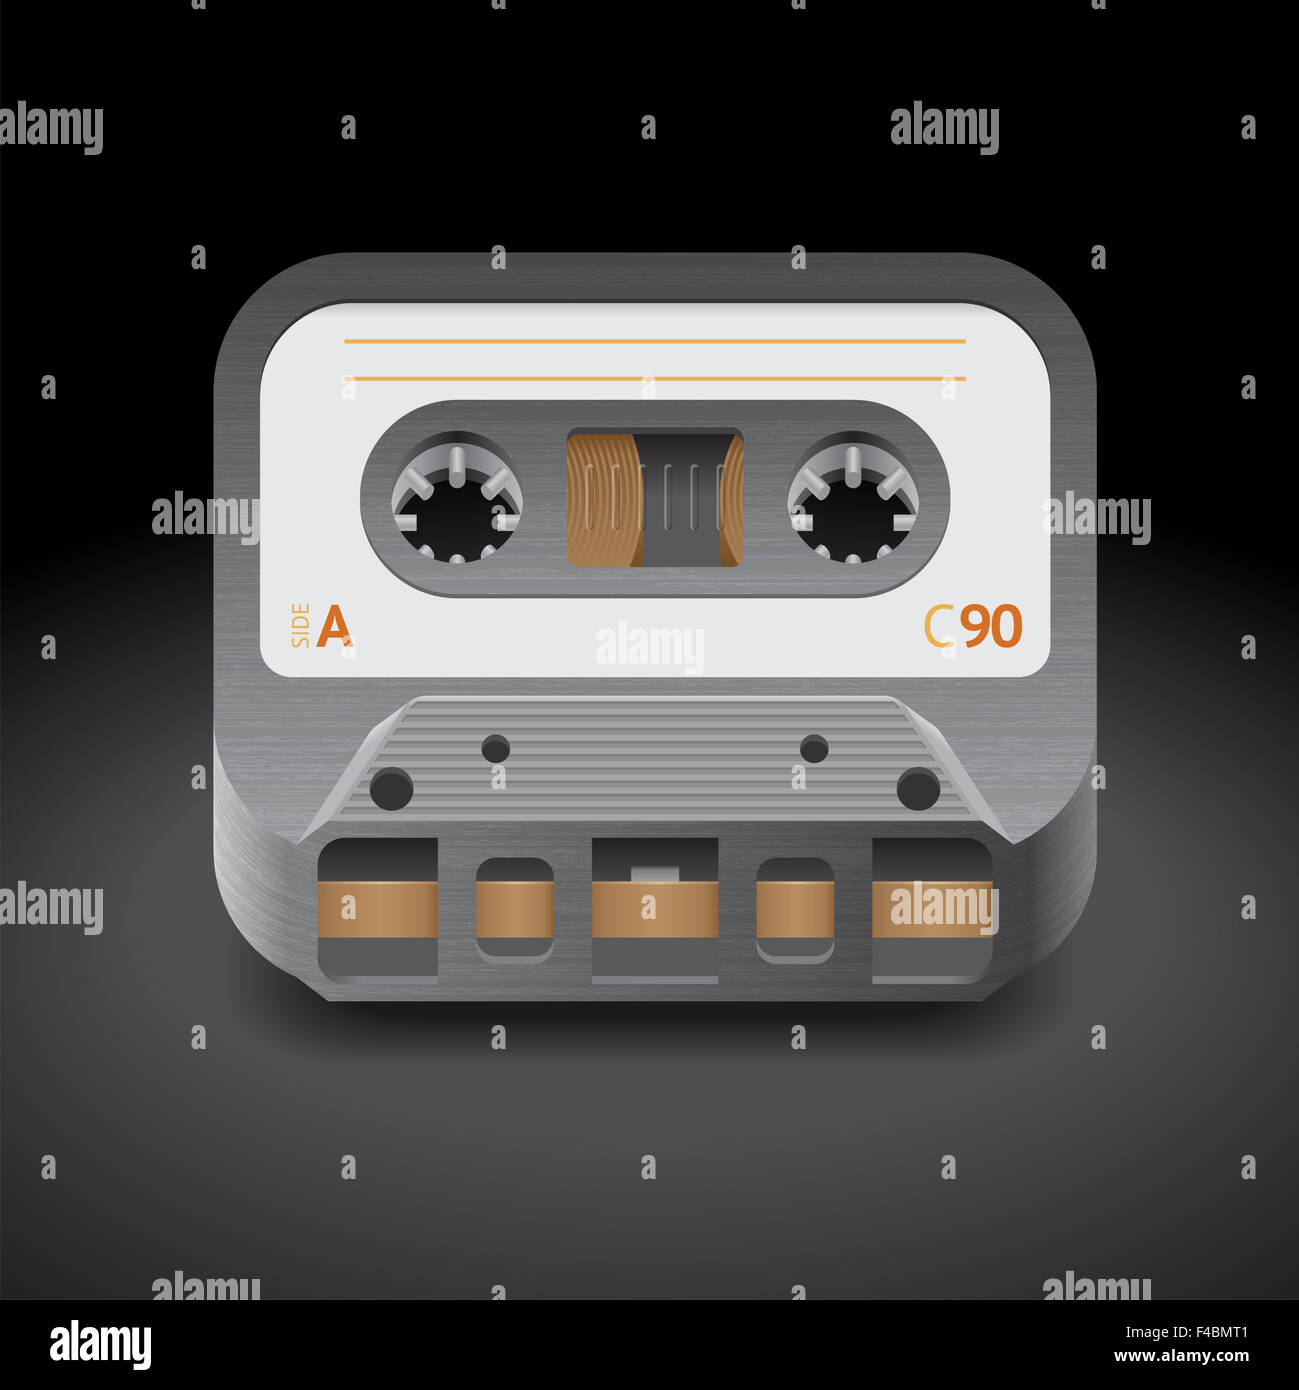 Icon for audio cassette - Stock Image